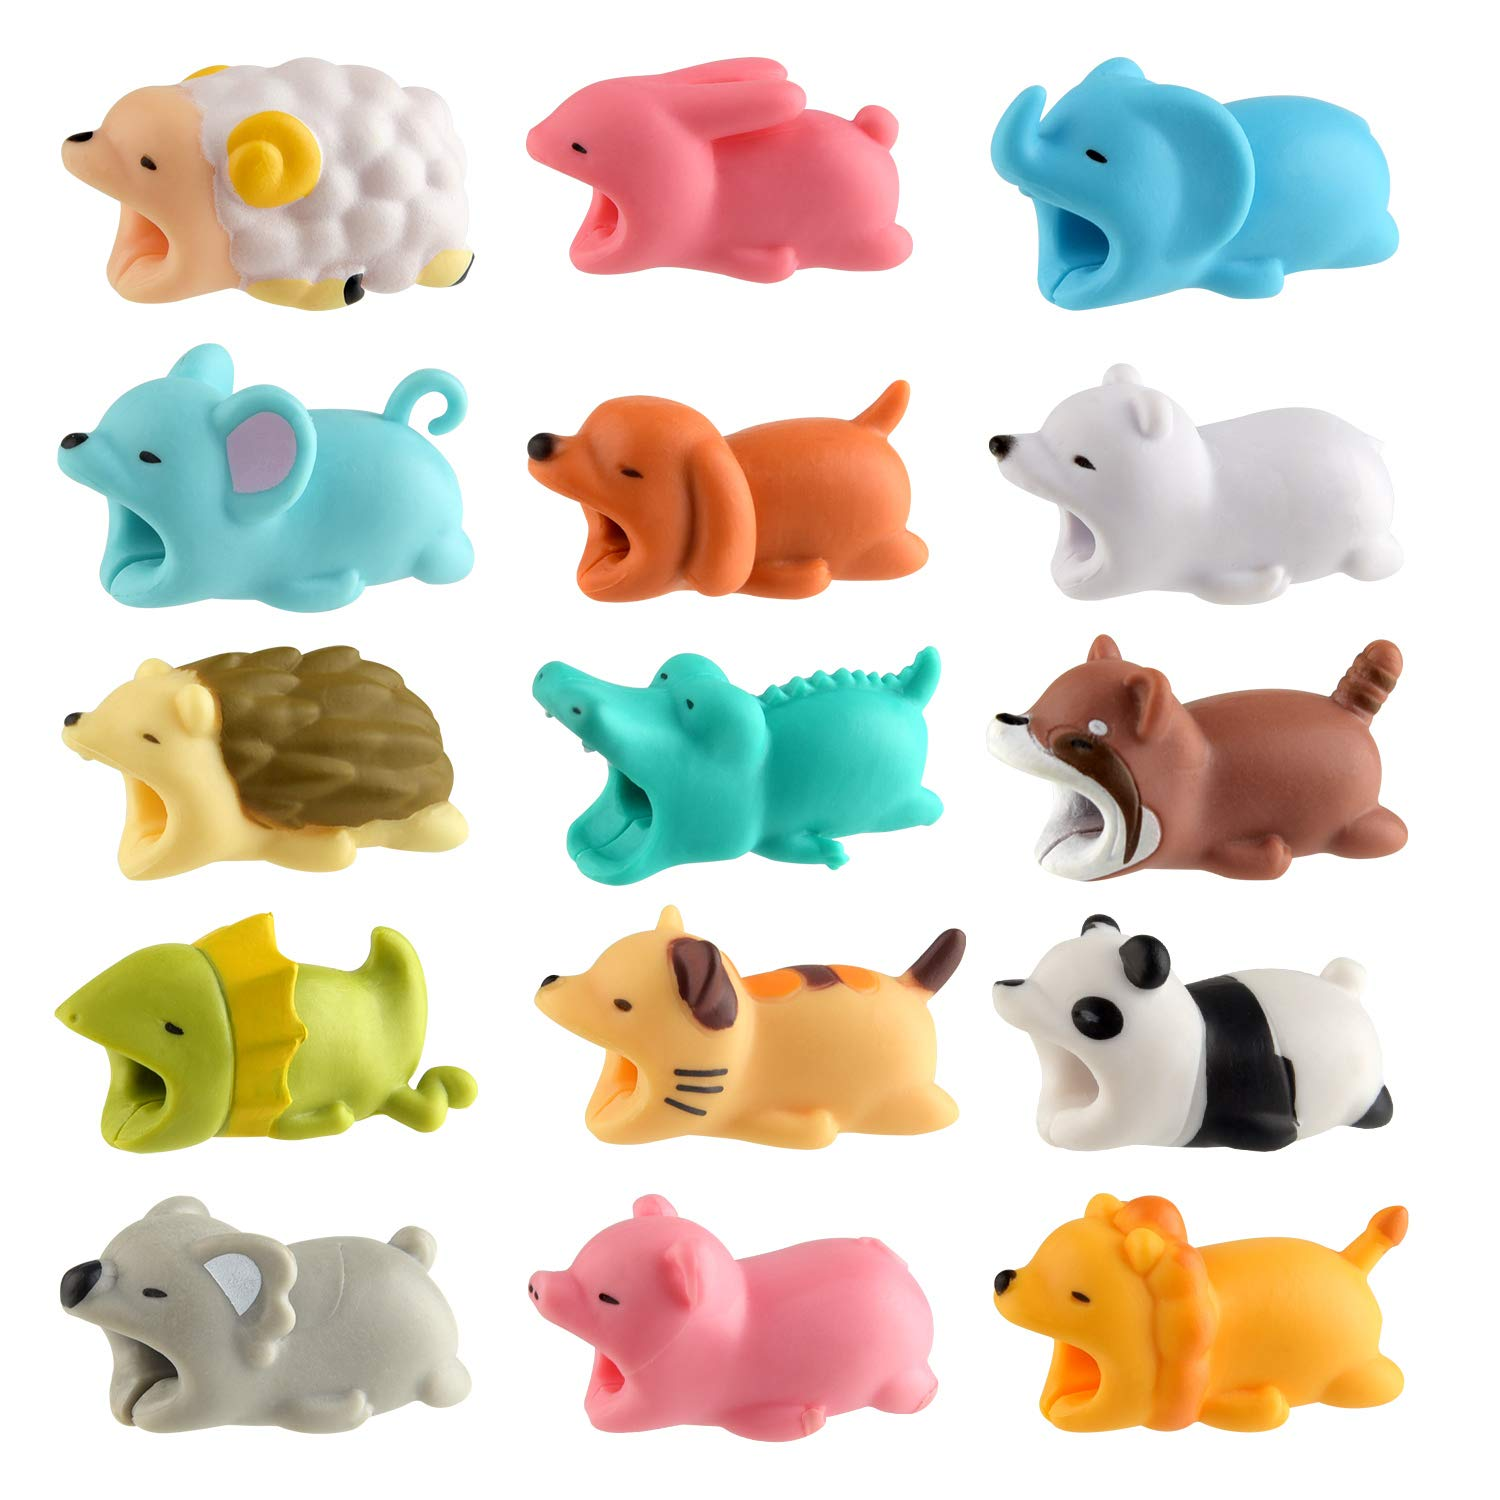 TUPARKA 15 PCS Animal Cable Protector Cute Animal Bites, Charger Cord Saver USB Charging Cable Protector Works with Most Cell Phone Charging Cable